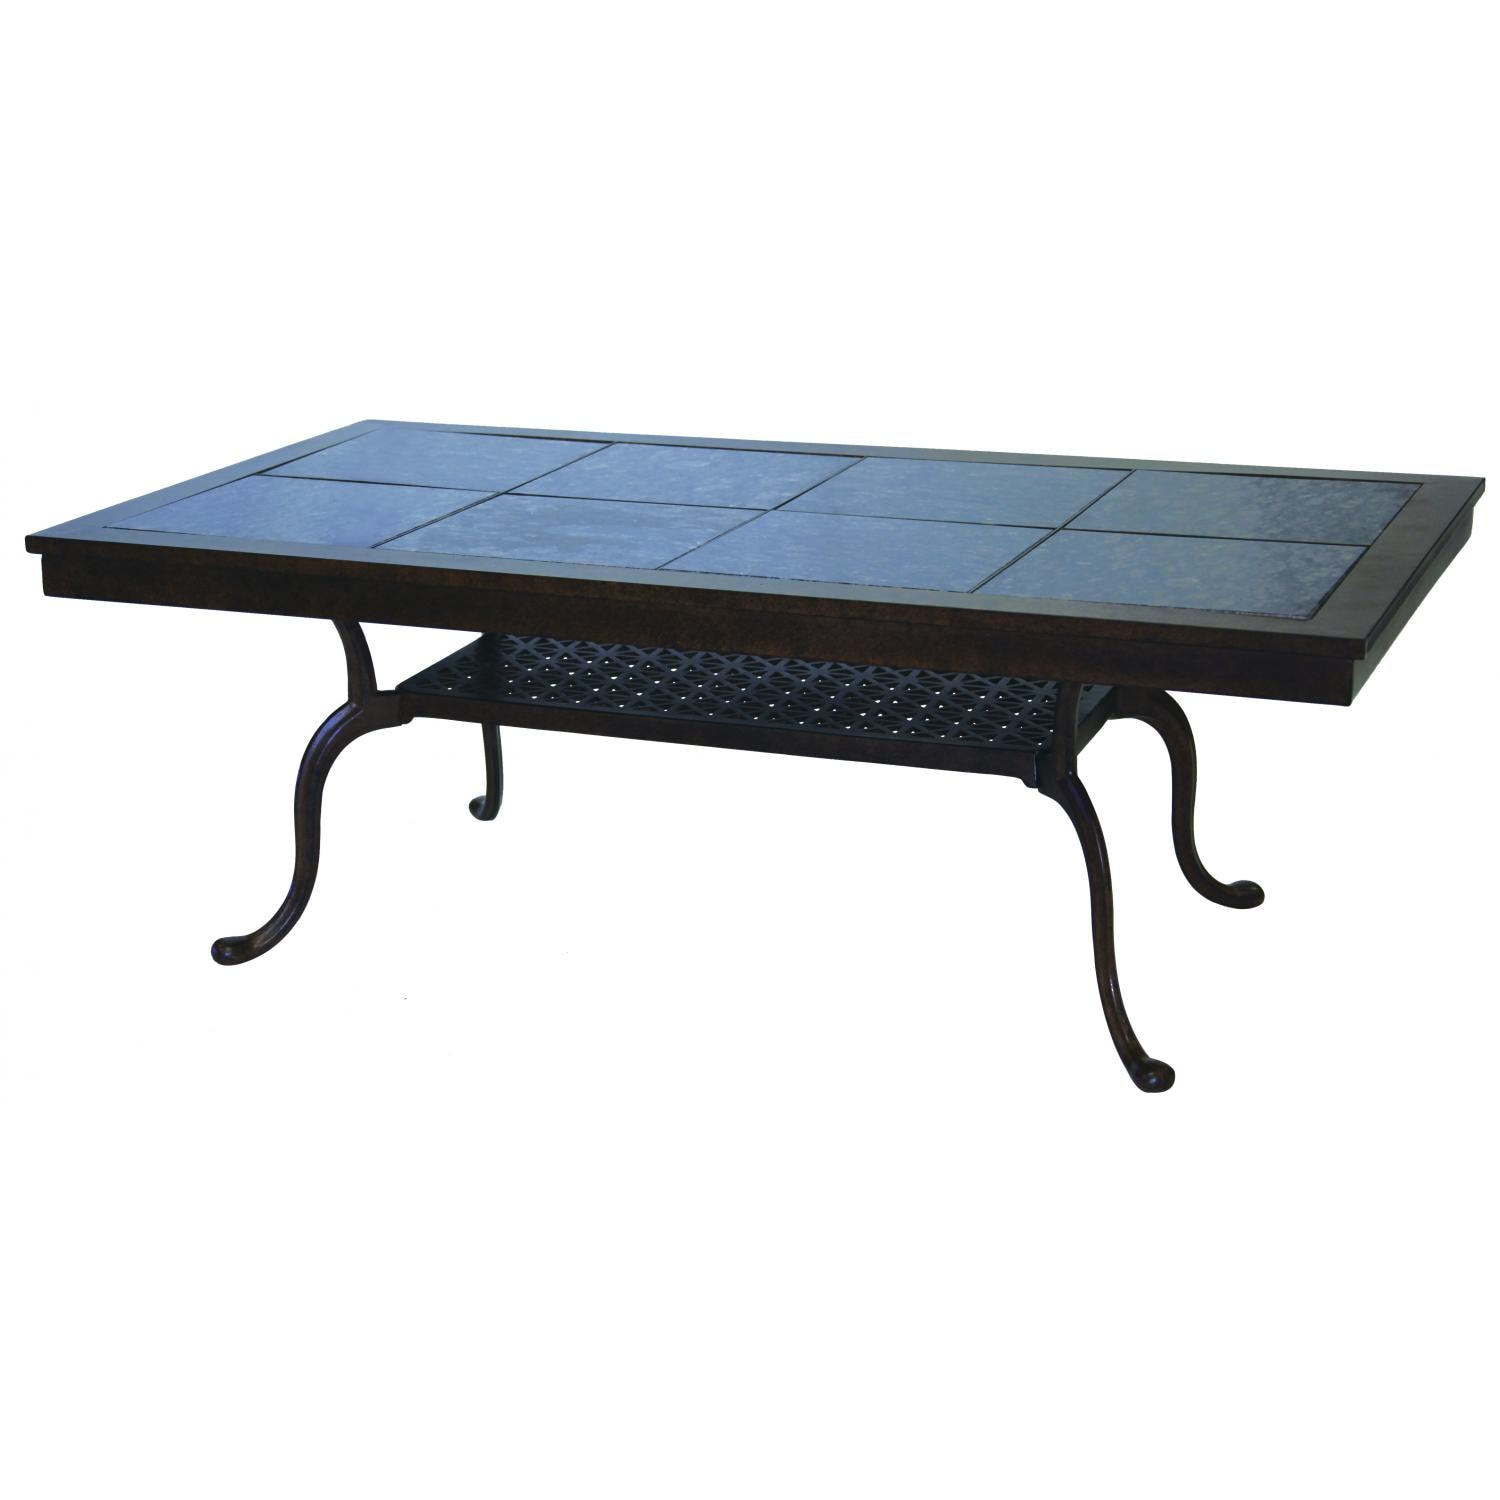 Aluminum Patio Coffee Table: Darlee Series 77 52 X 28 Inch Cast Aluminum Patio Coffee